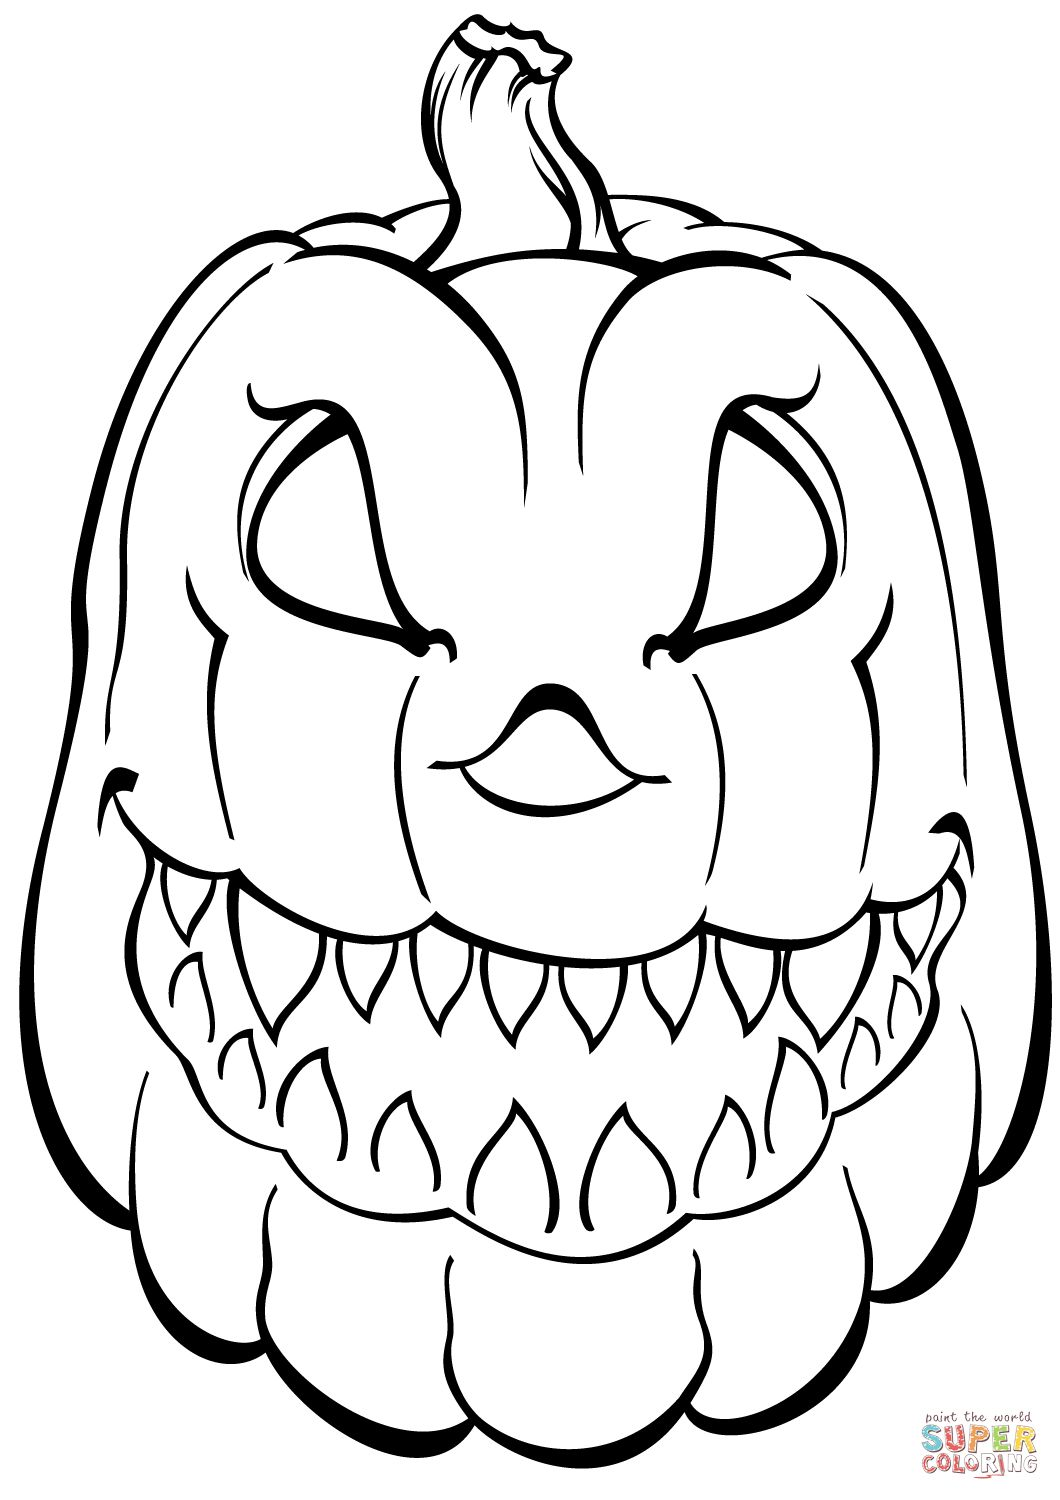 Free Printable Pumpkin Coloring Pages Scary Pumpkin Coloring Page Free Printable Coloring Pages Entitlementtrap Com Pumpkin Coloring Pages Halloween Coloring Pages Printable Halloween Coloring